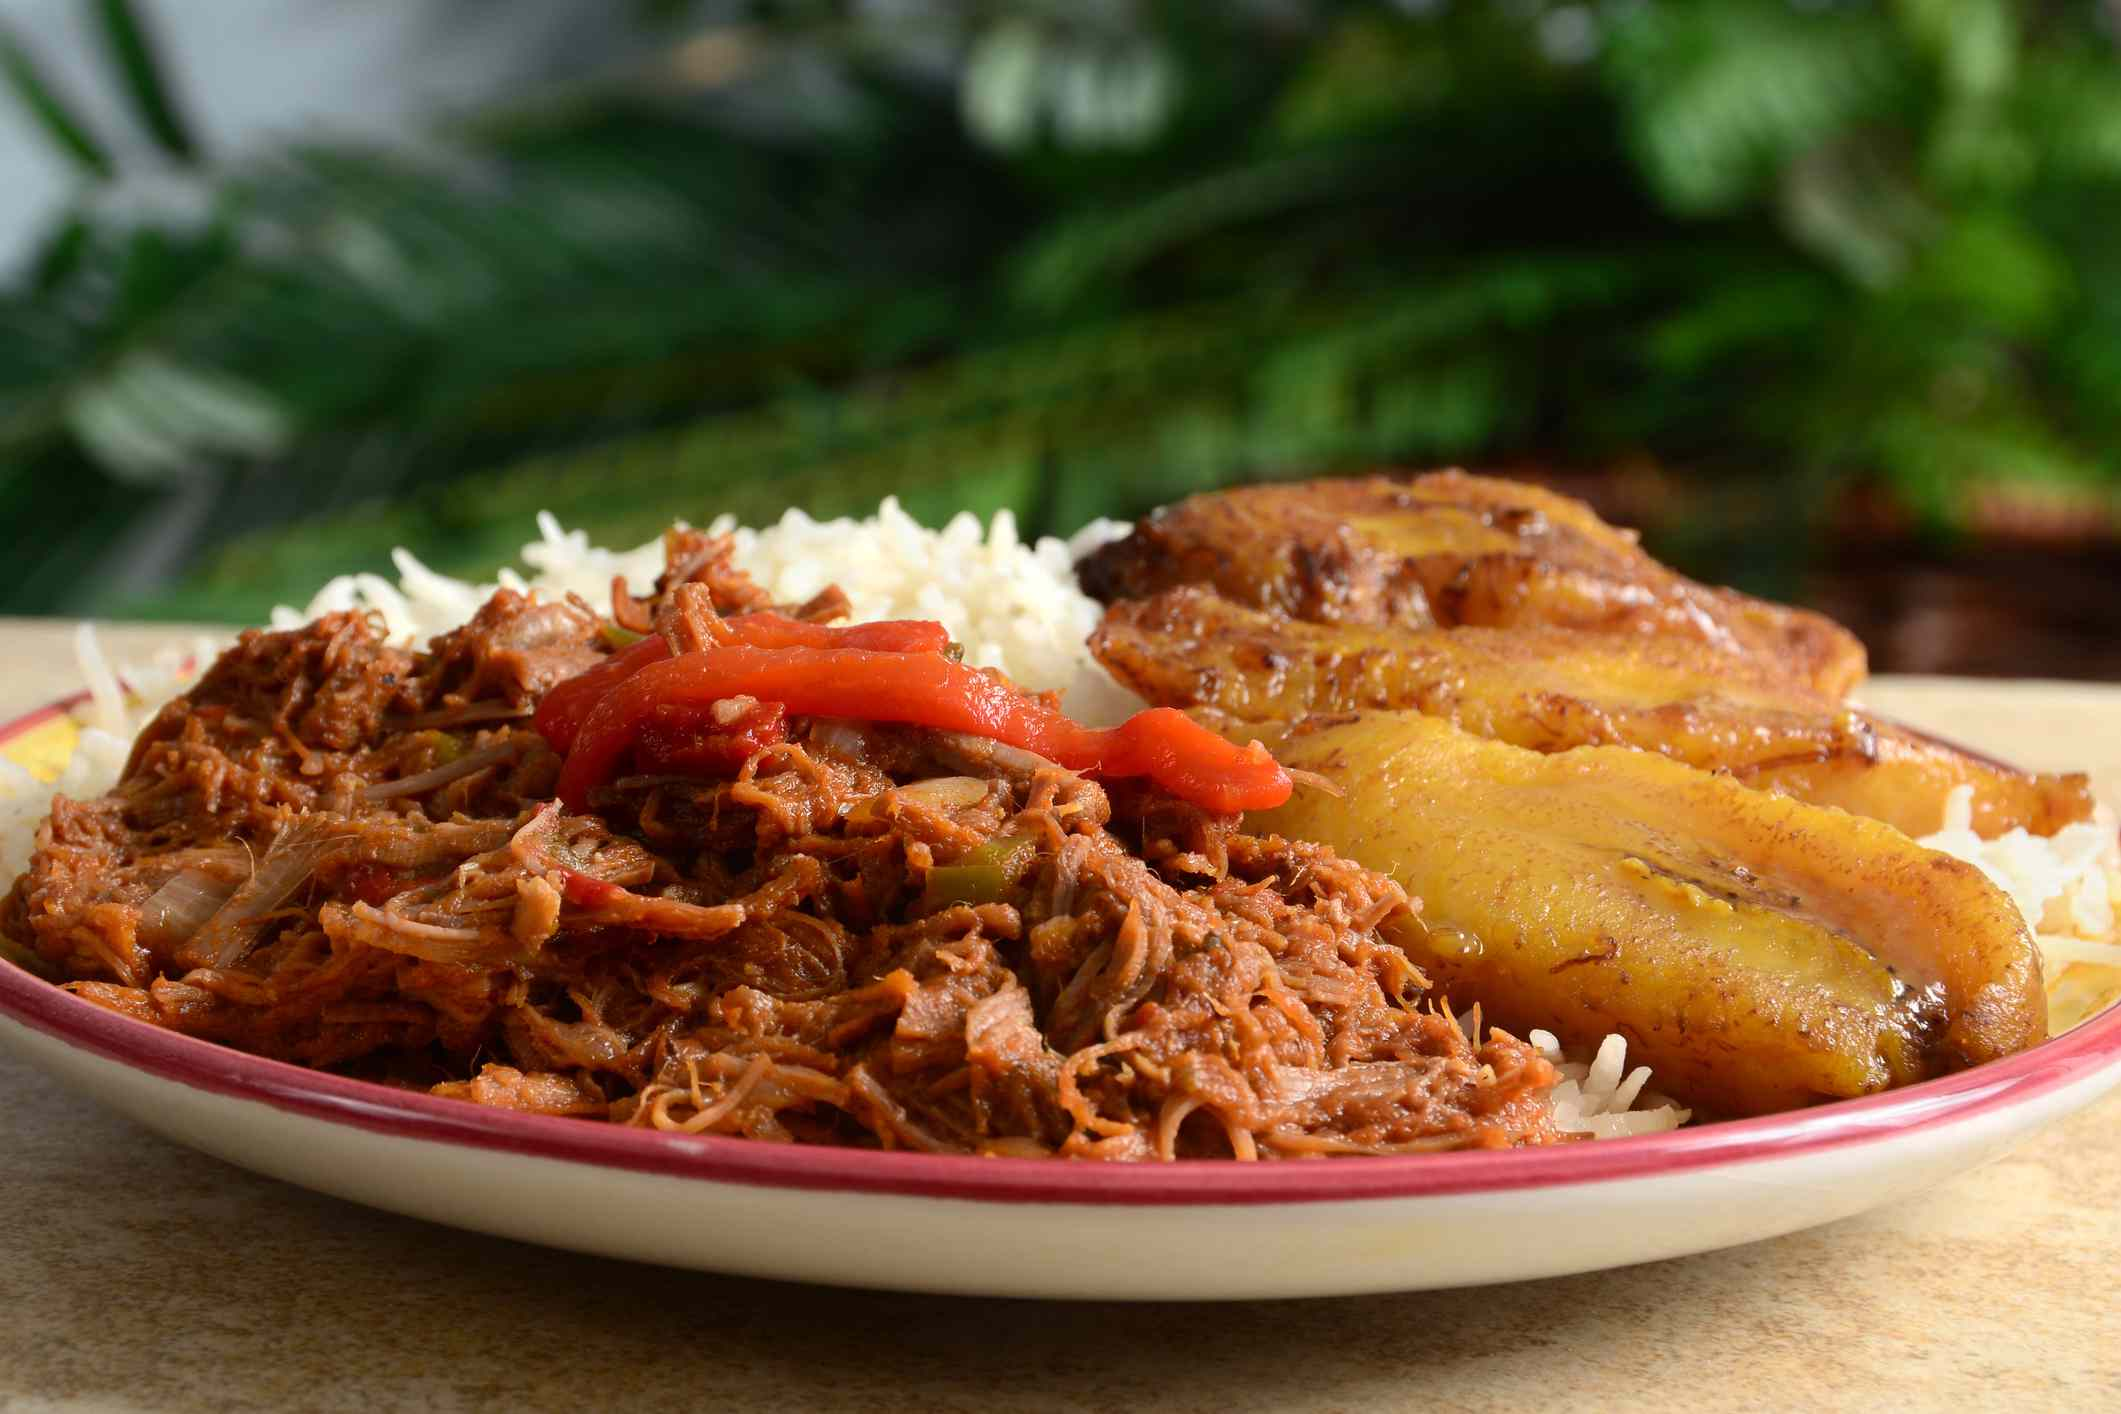 A plate full of Caribbean food